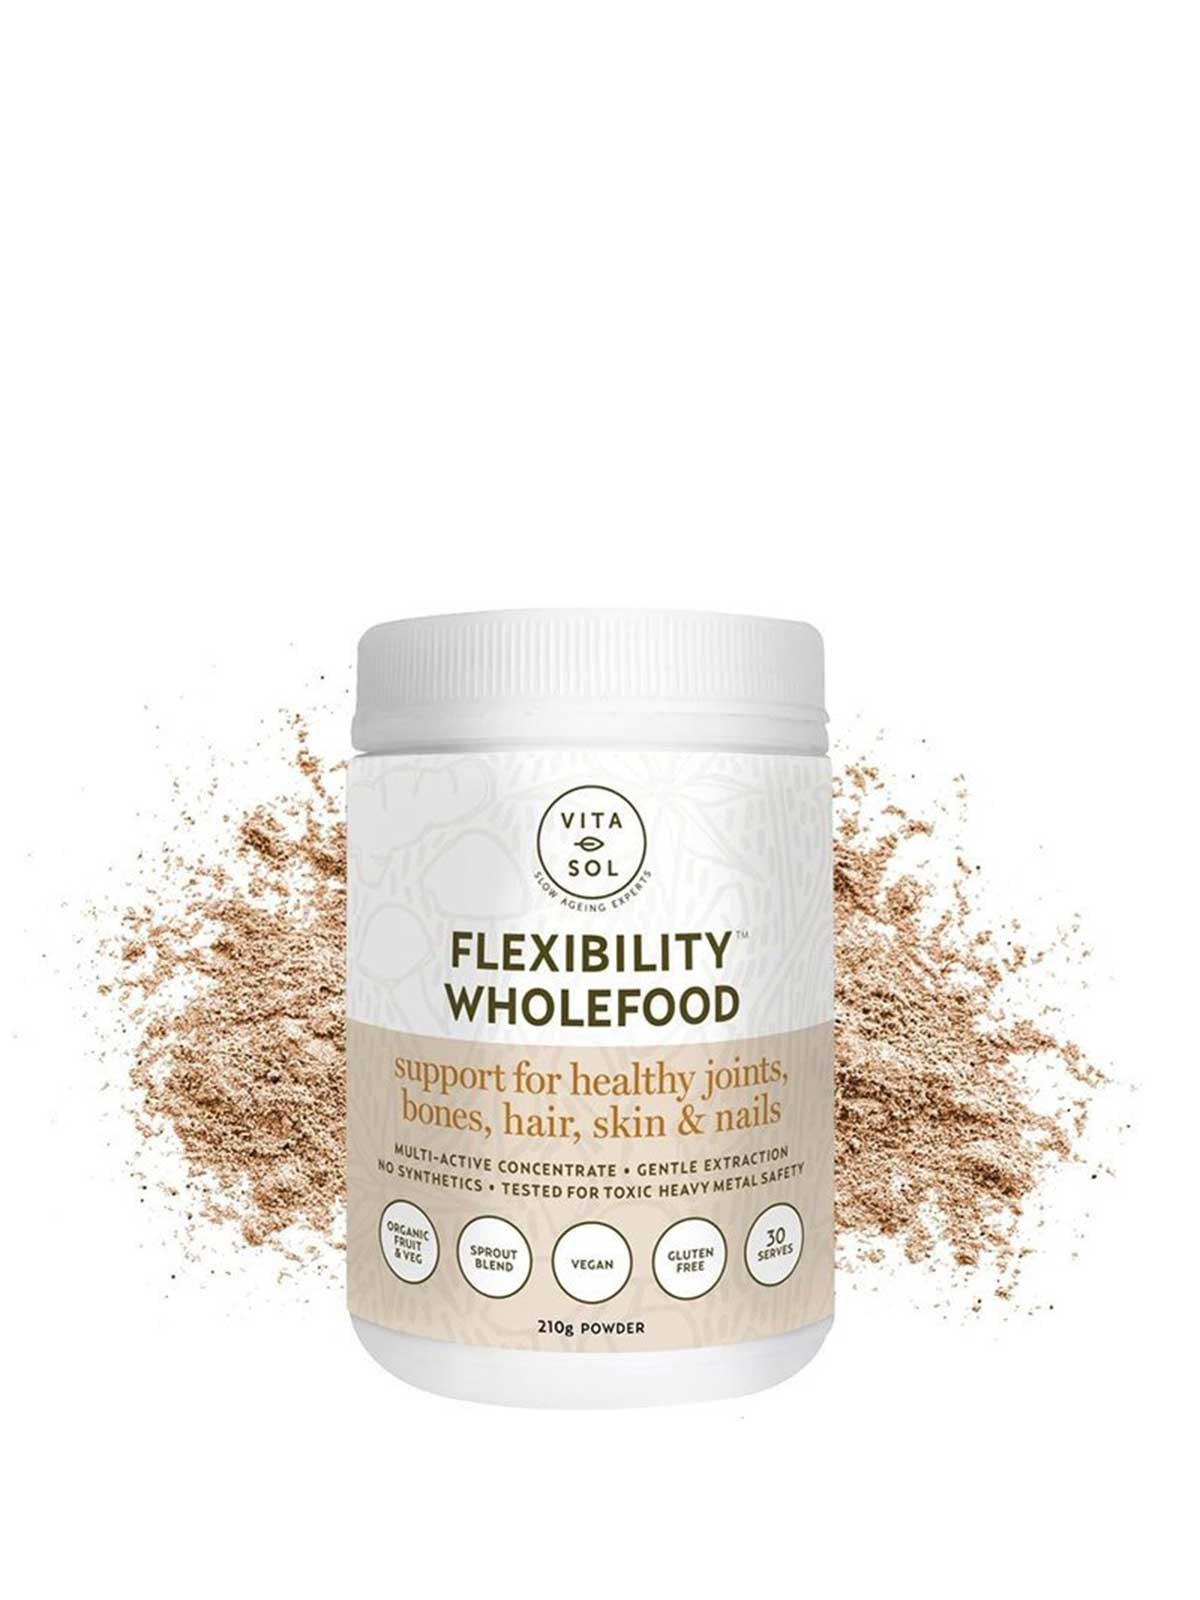 Vita Sol Flexibility Wholefood Powder